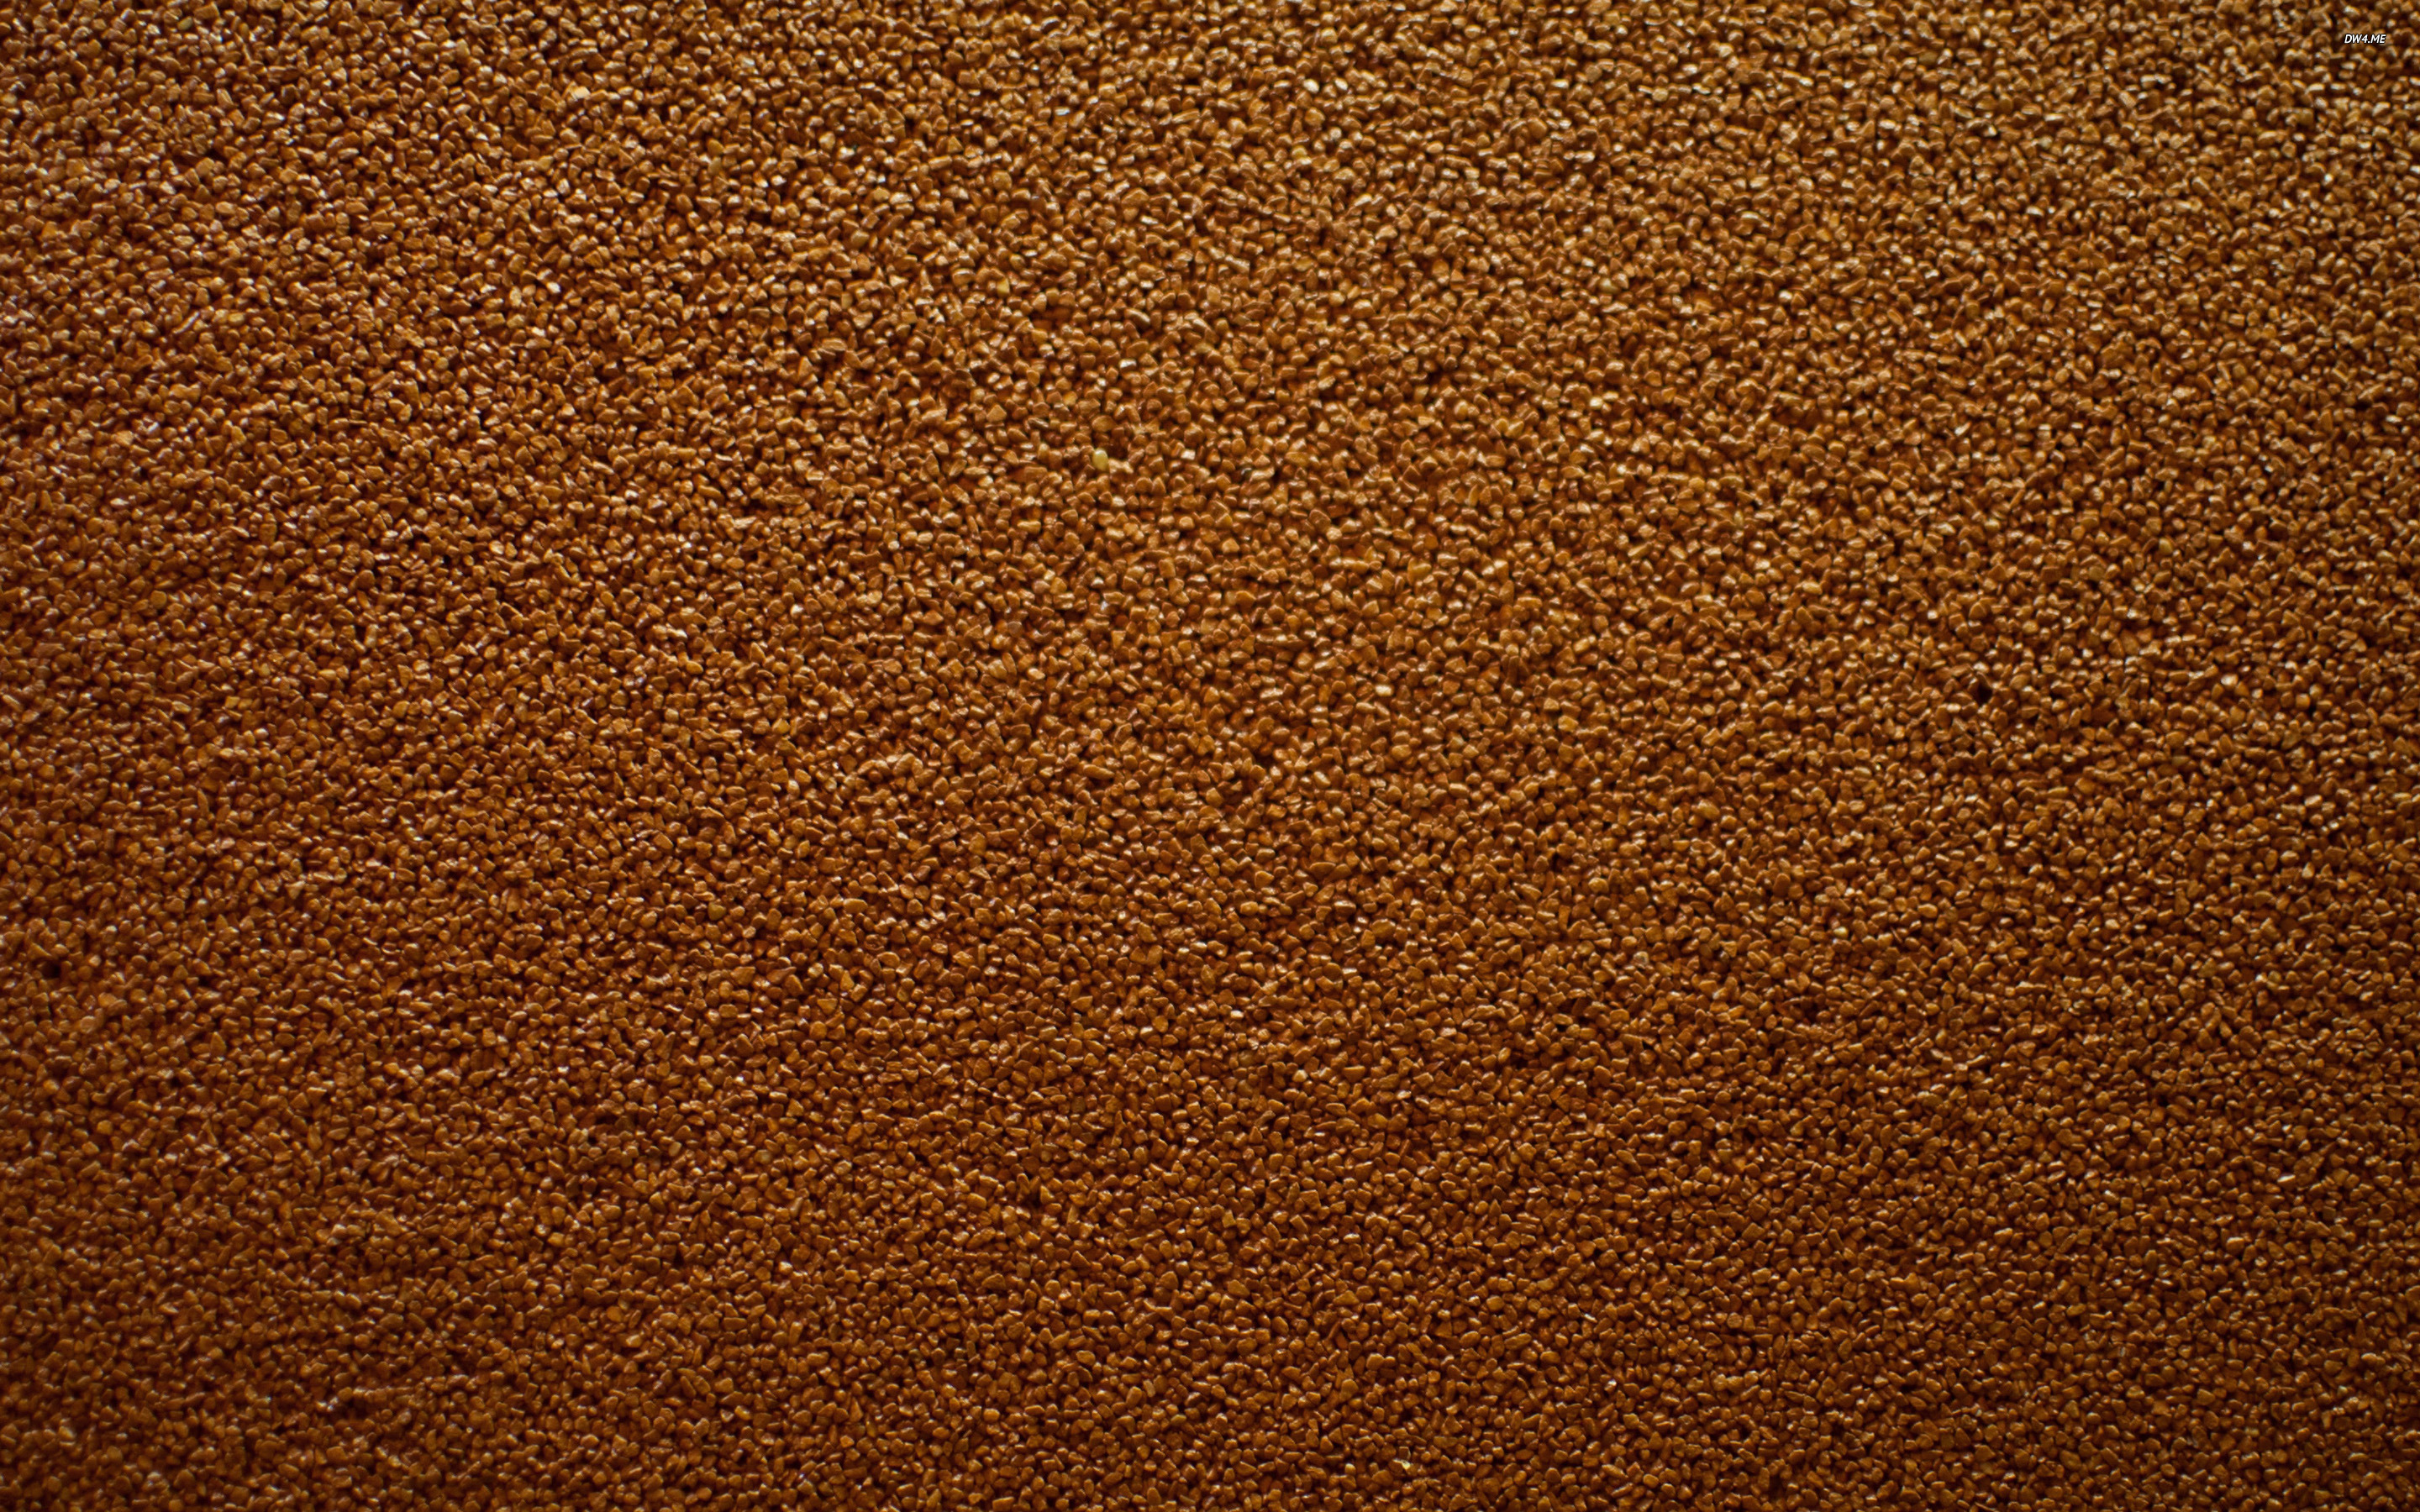 Brown Wall wallpapers HD   355553 2880x1800